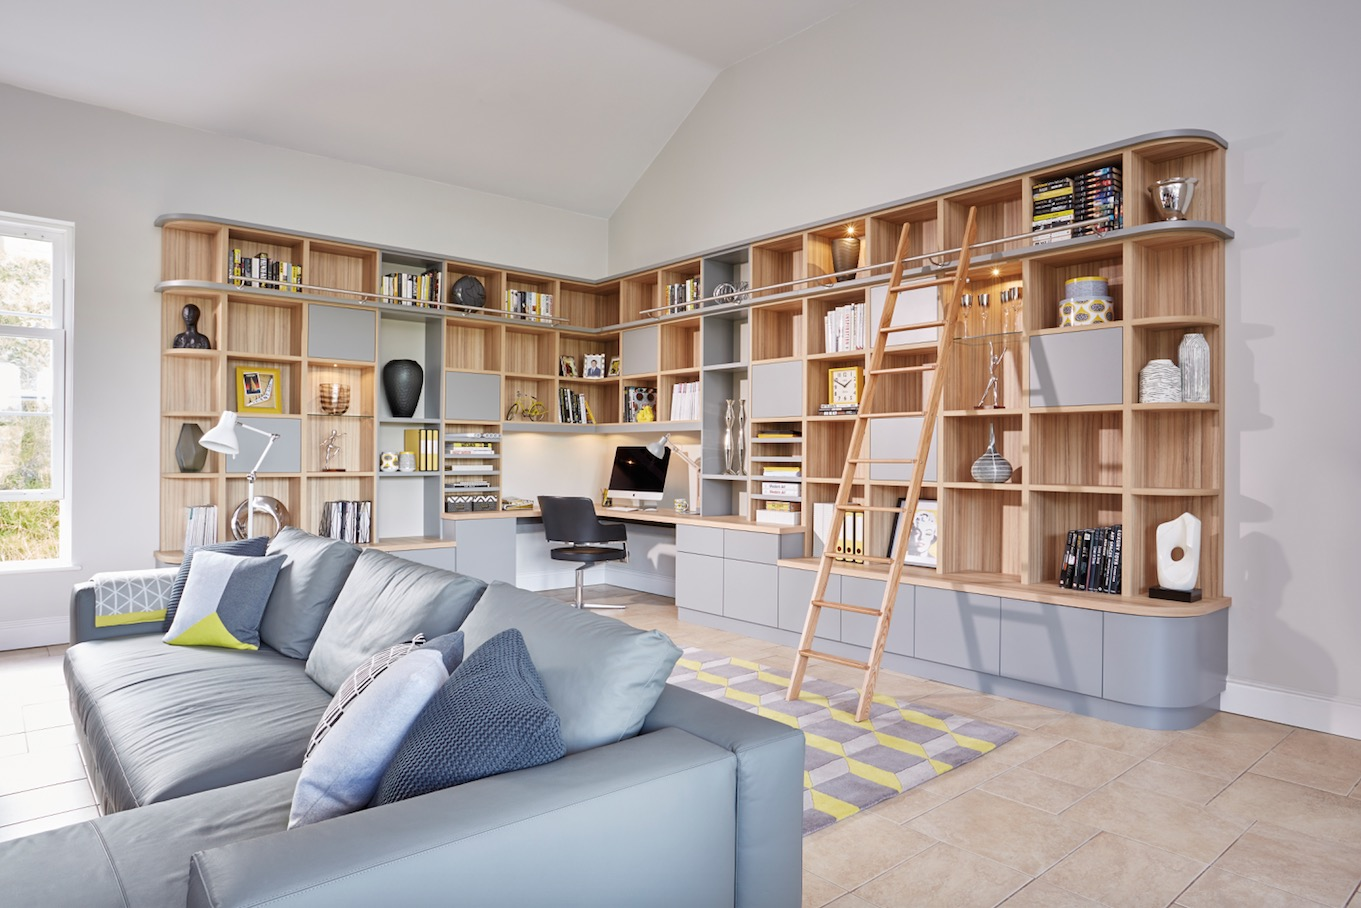 spacious-living-room-with-shelves-and-cabinet-storage-6-solutions-and-storage-ideas-for-your-living-room